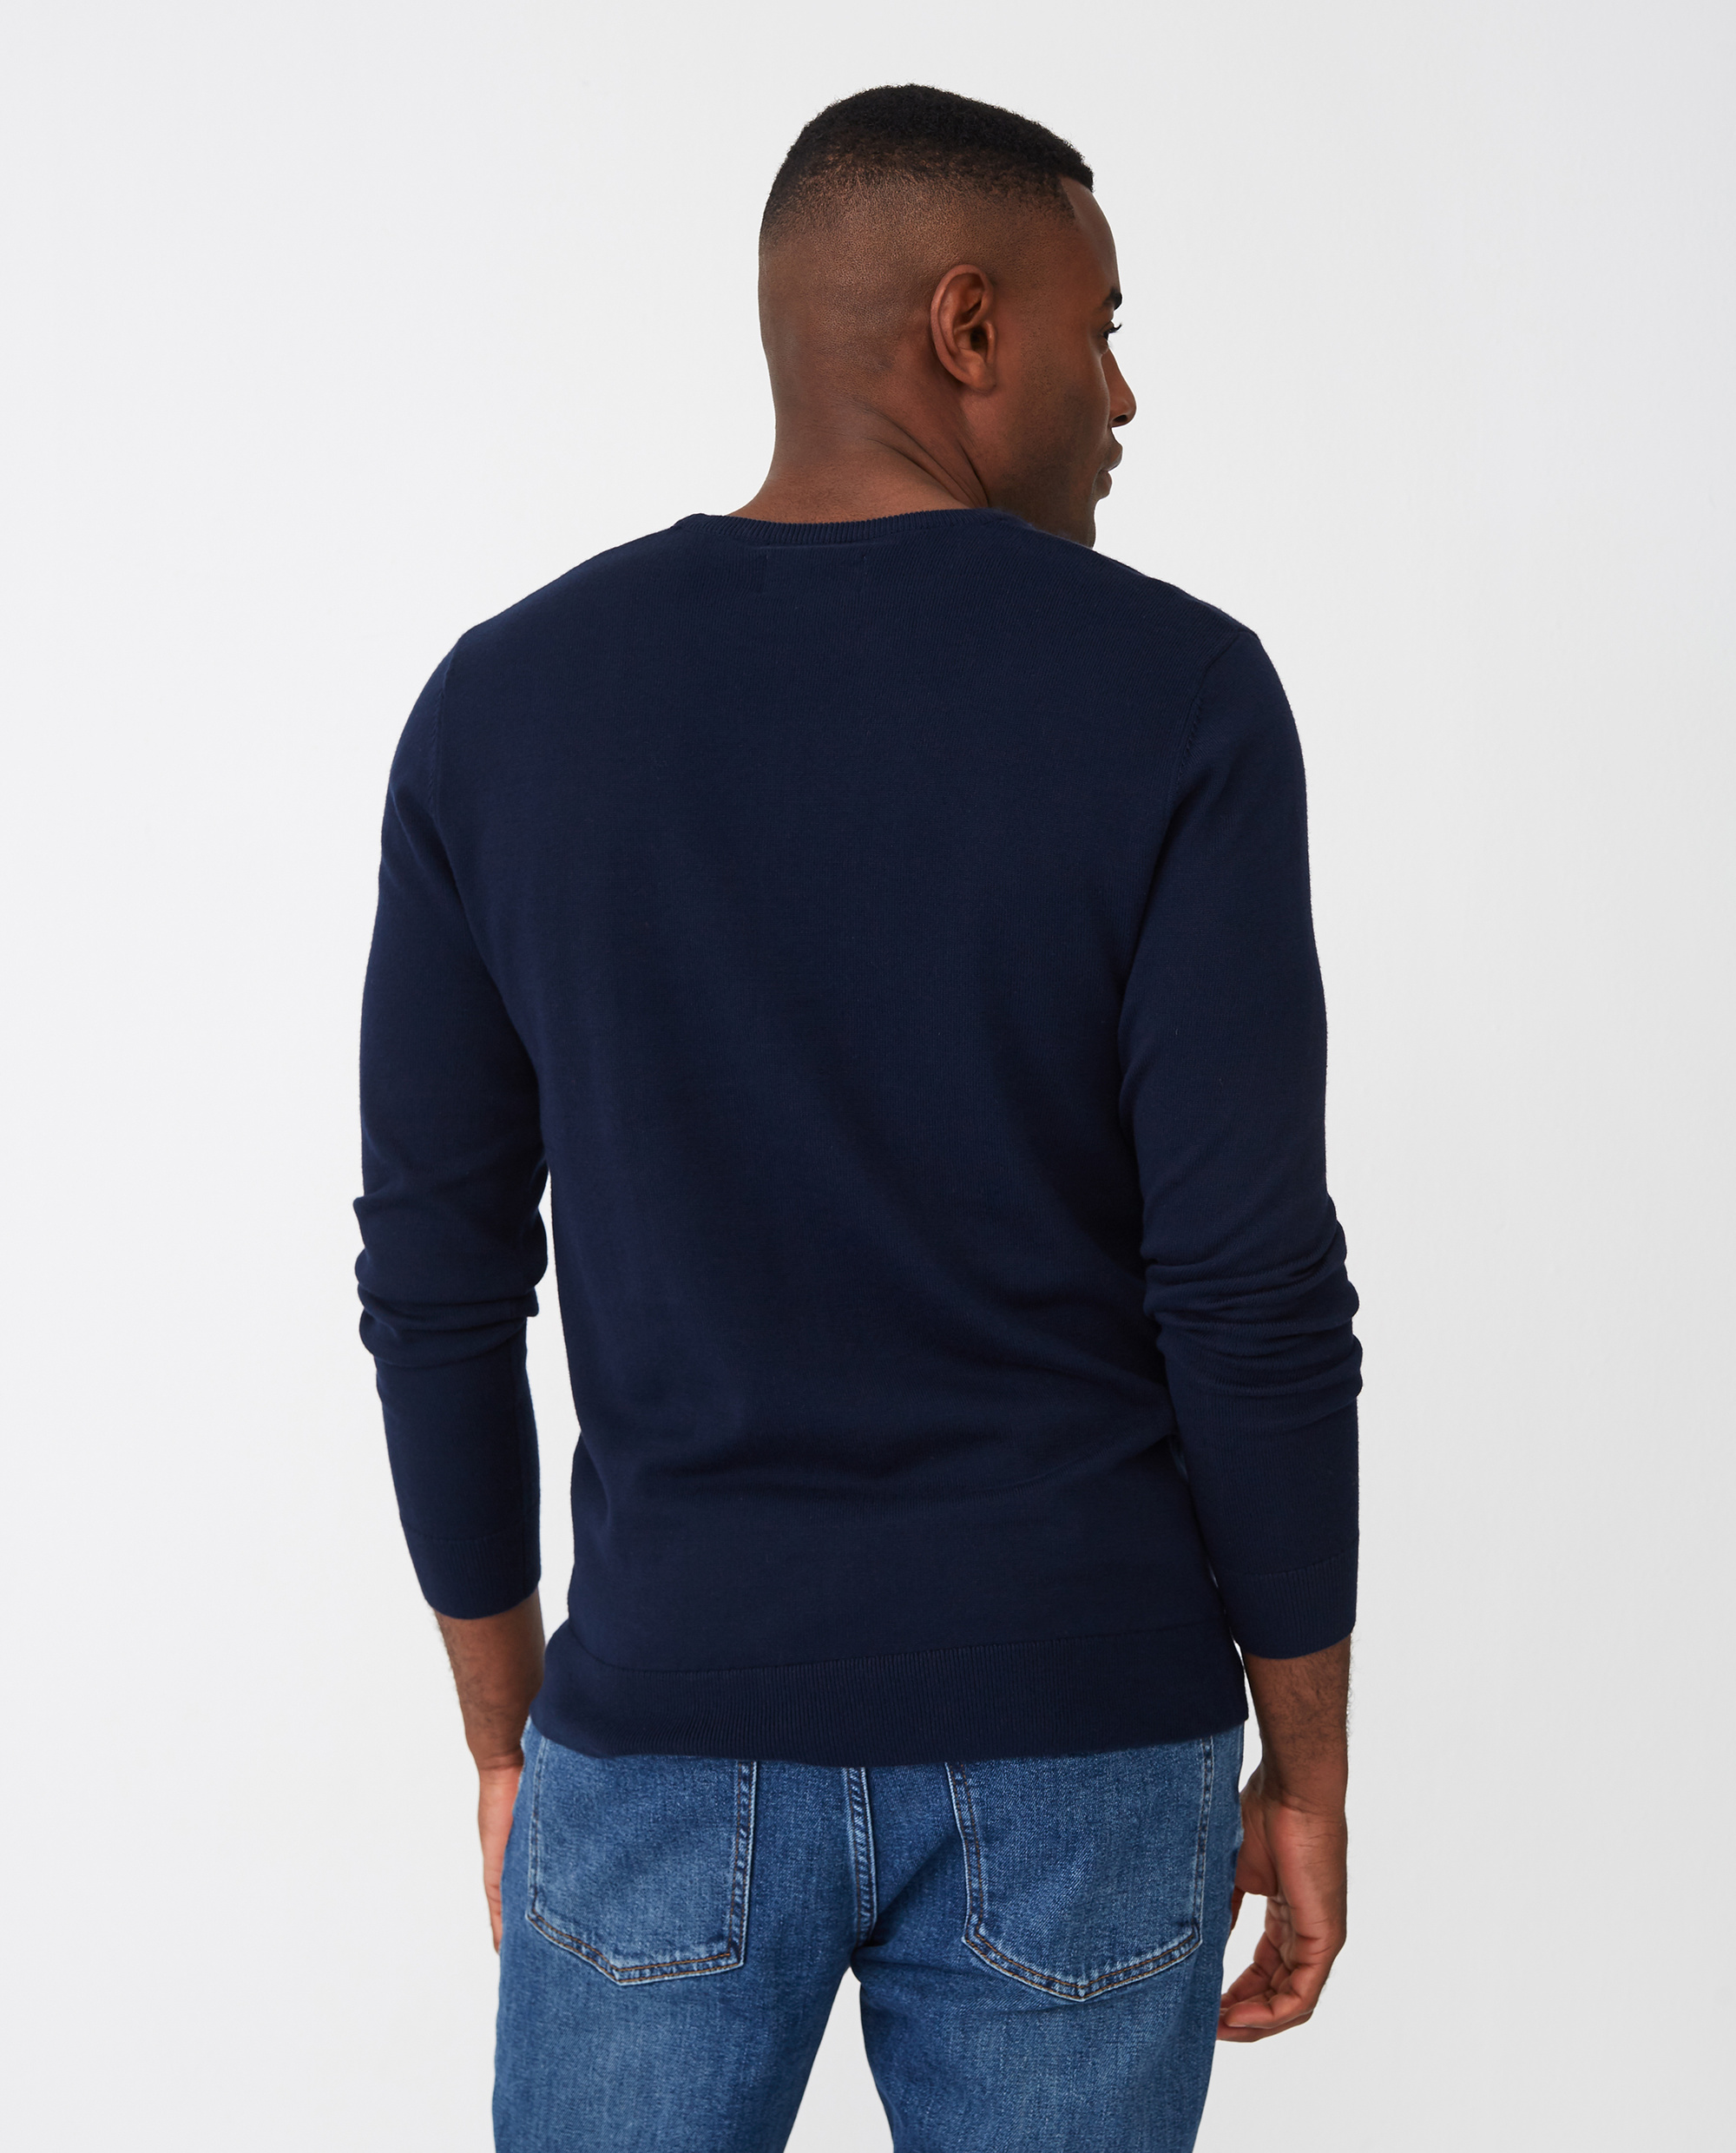 Bradley Organic Cotton Crew Neck Sweater, Dark Blue